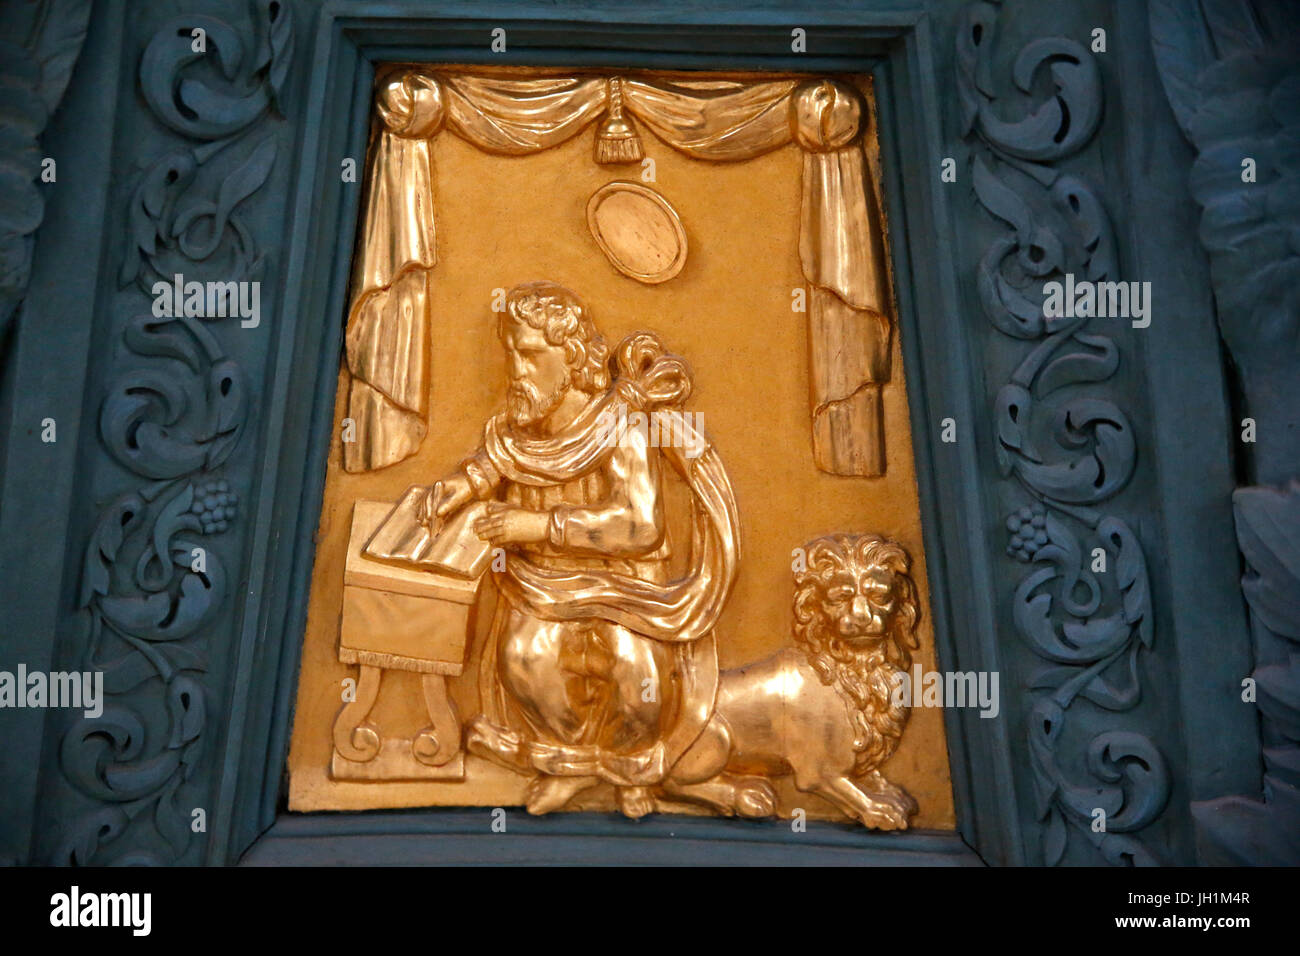 Notre Dame de Sees cathedral. Detail of an 18th-century lectern. Evangelist Saint Mark. France. - Stock Image